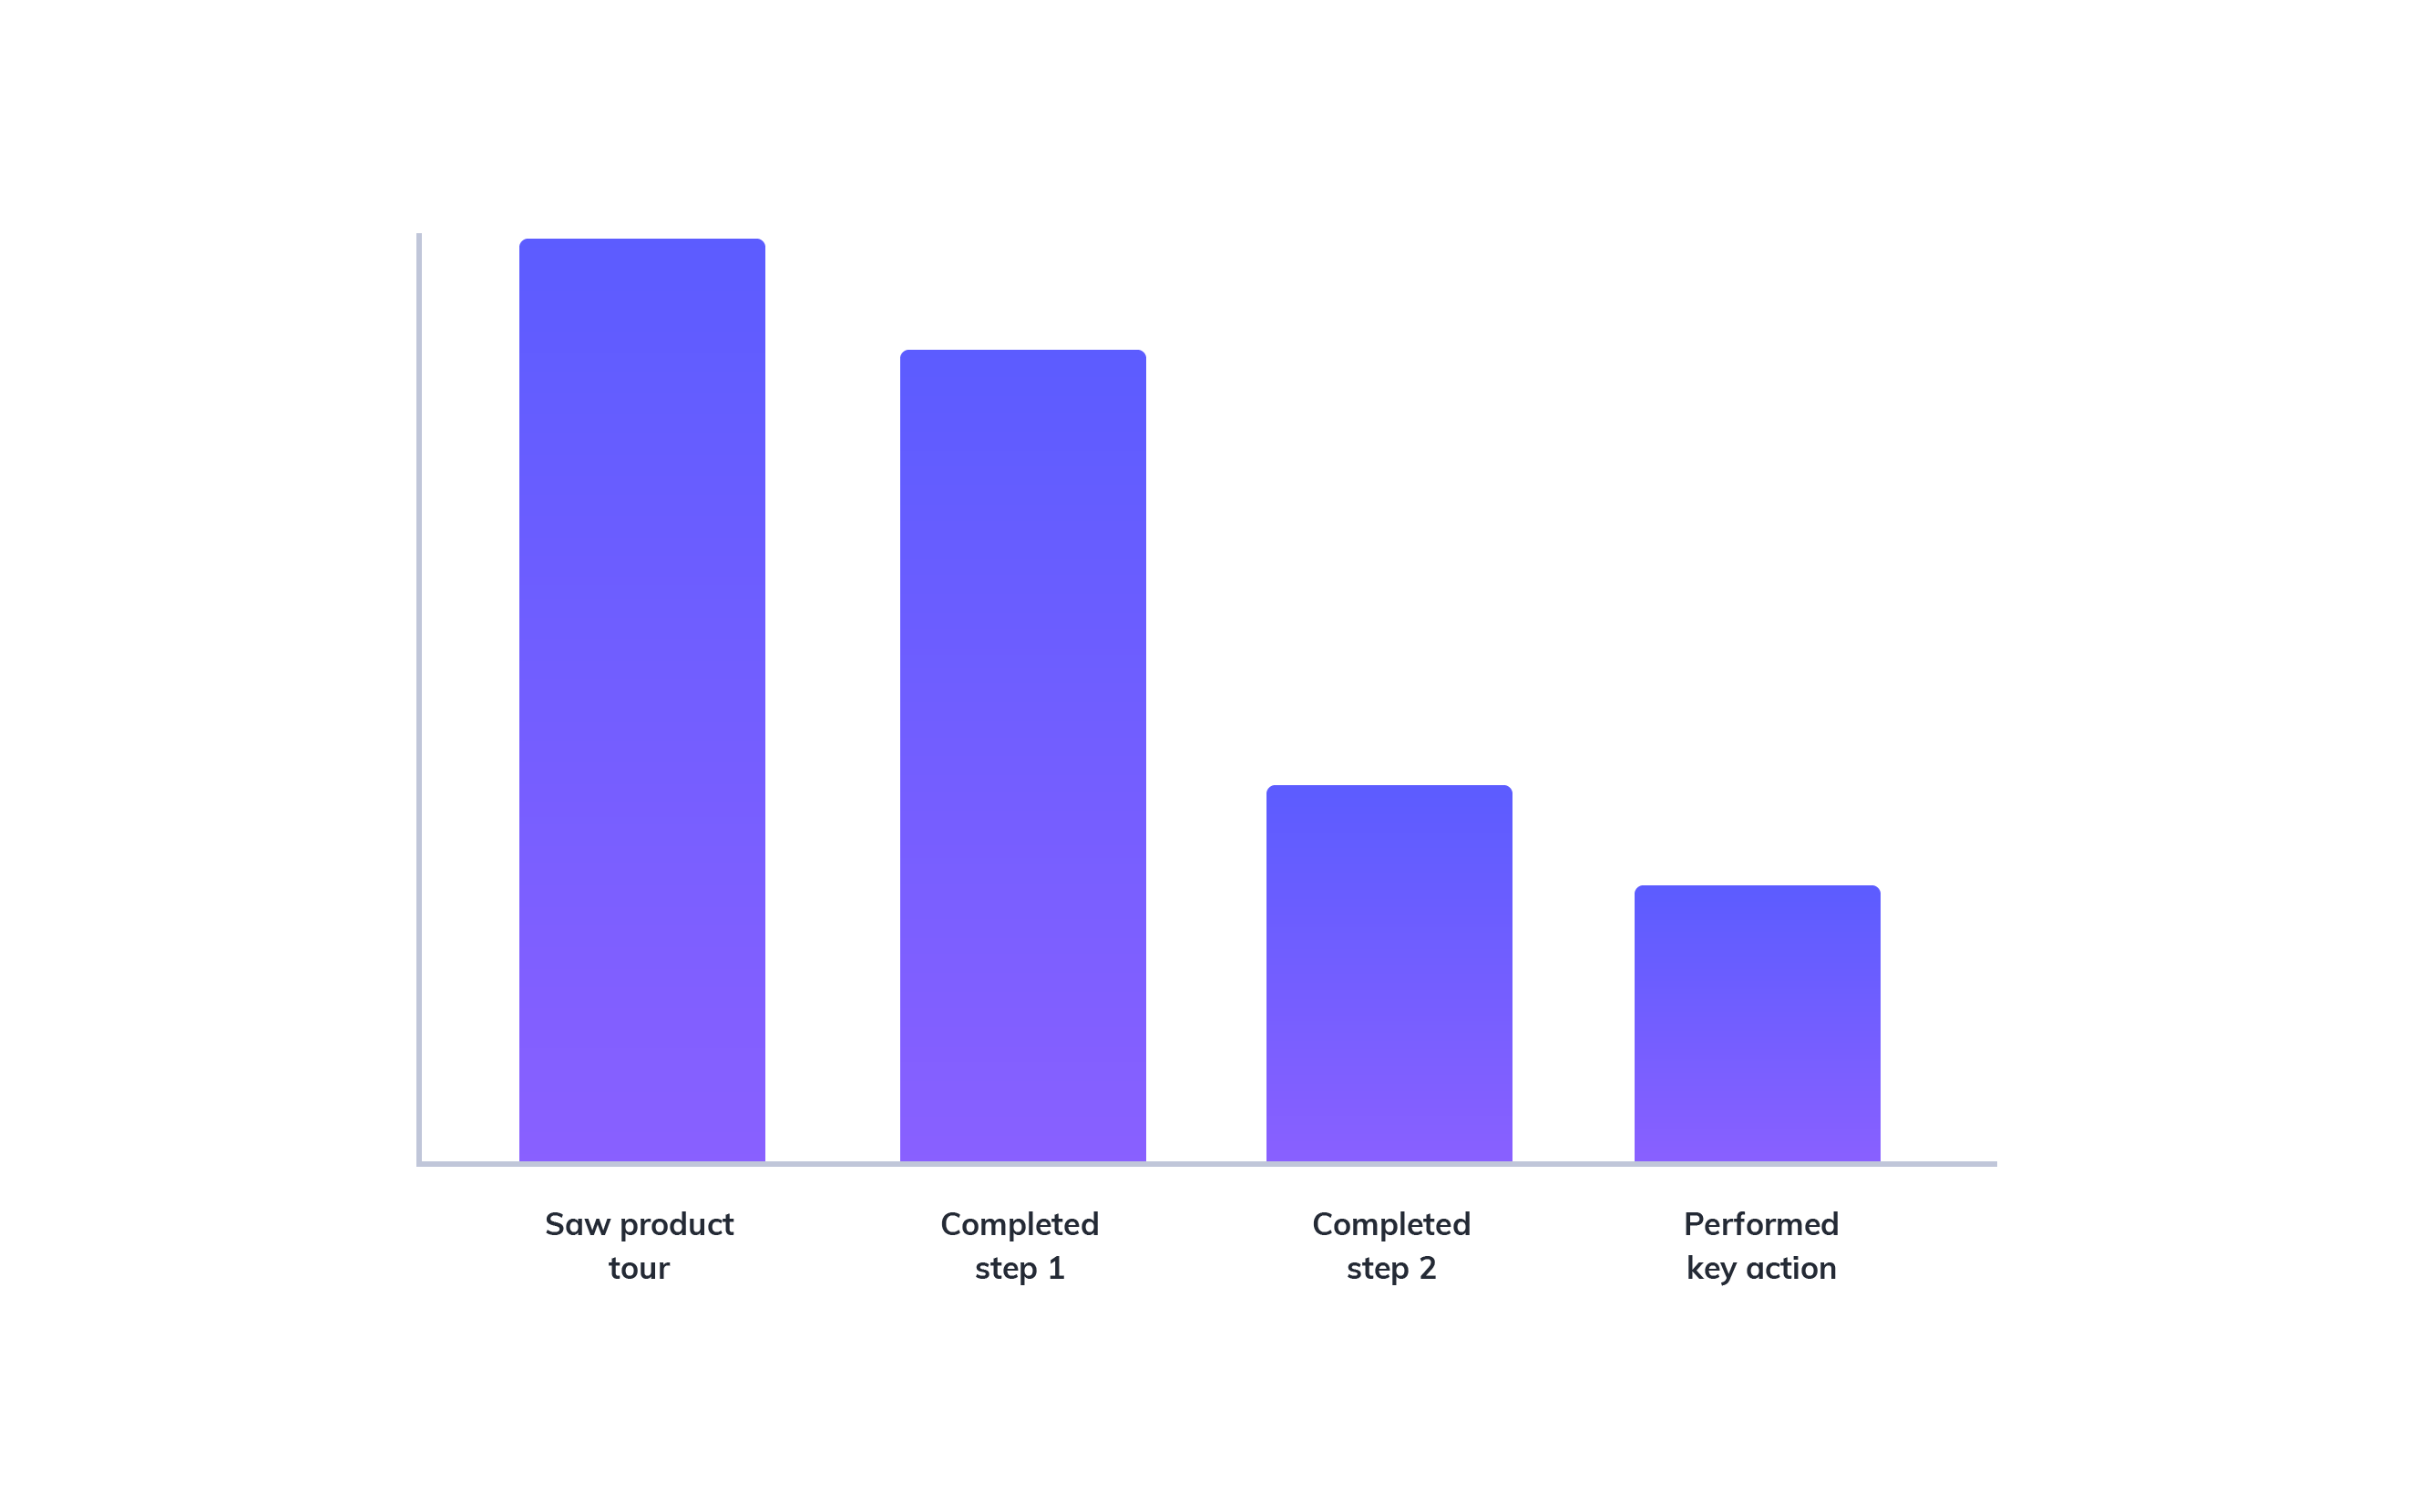 this is a bar graph showing the analytics result of an example product tour in which users abandon the product tour flow after completing the first step